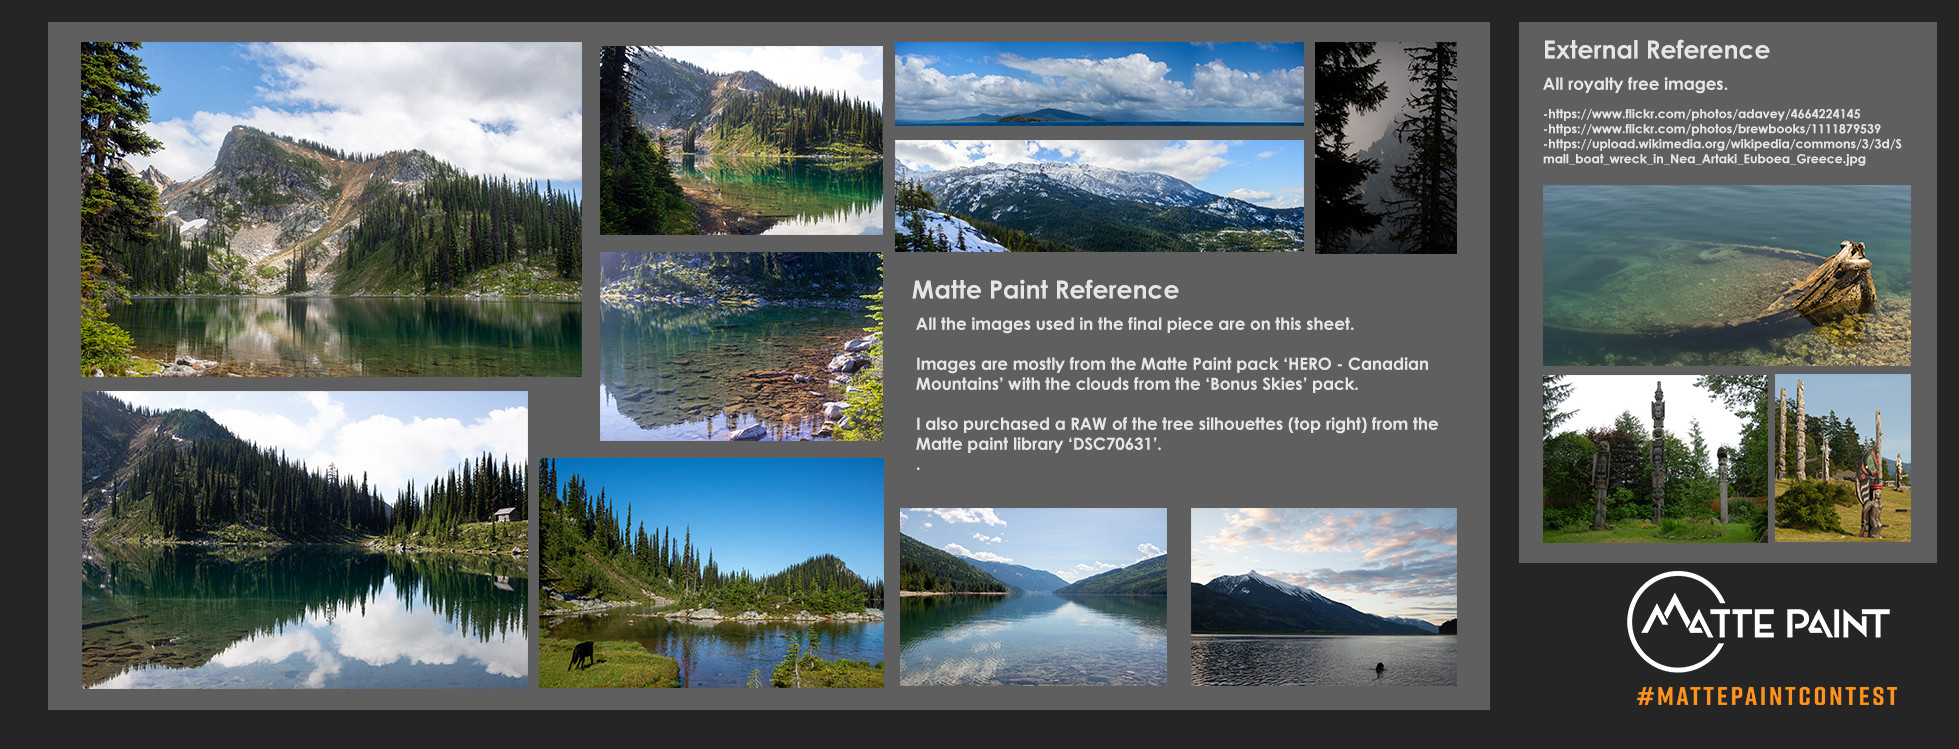 Contact sheet of all the images used.